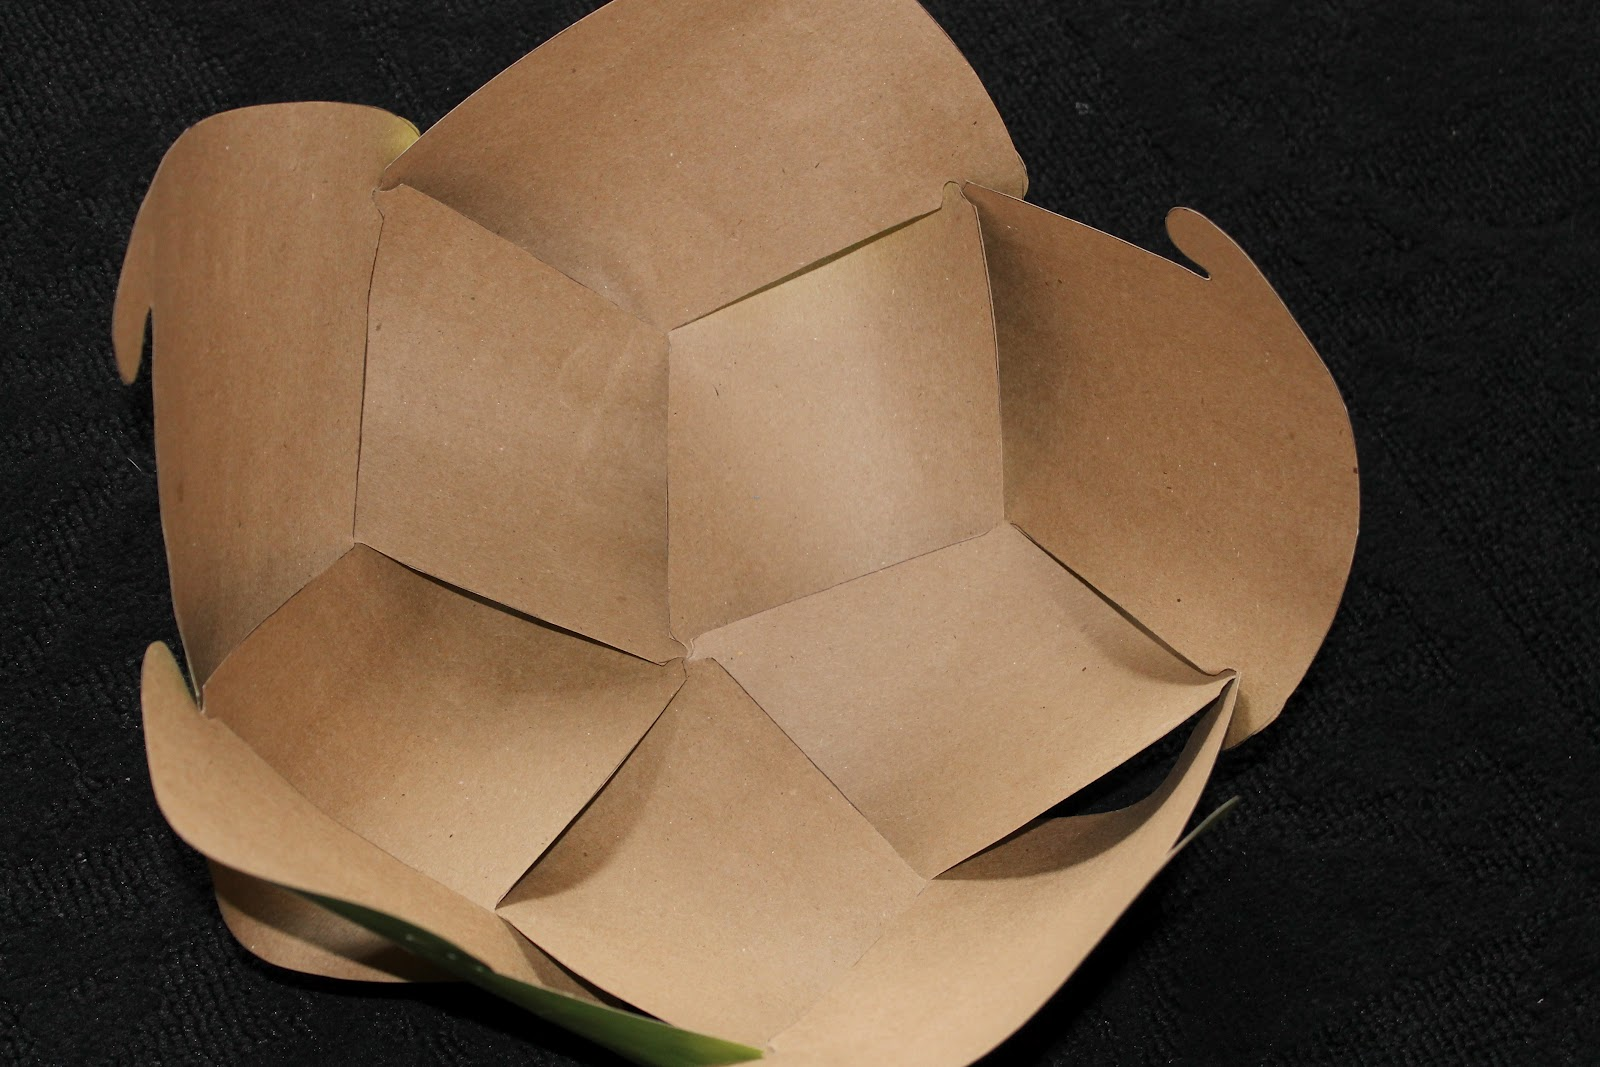 How To Make Colored Paper Spheres